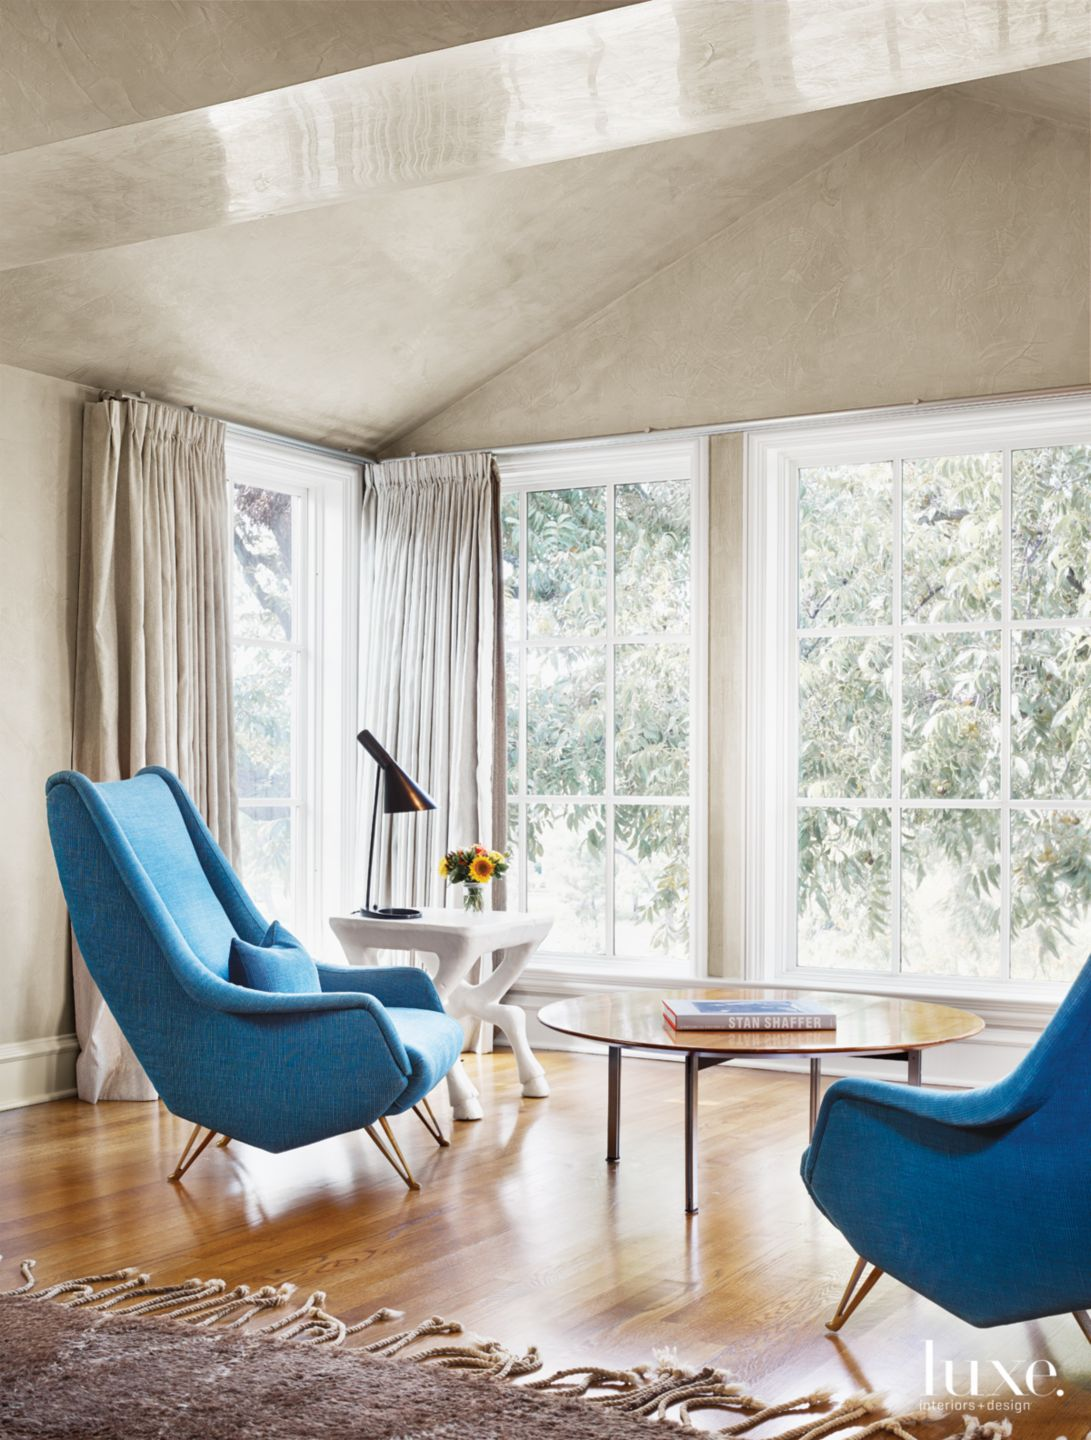 Modern Neutral Bedroom Sitting Area with Blue Midcentury Chairs